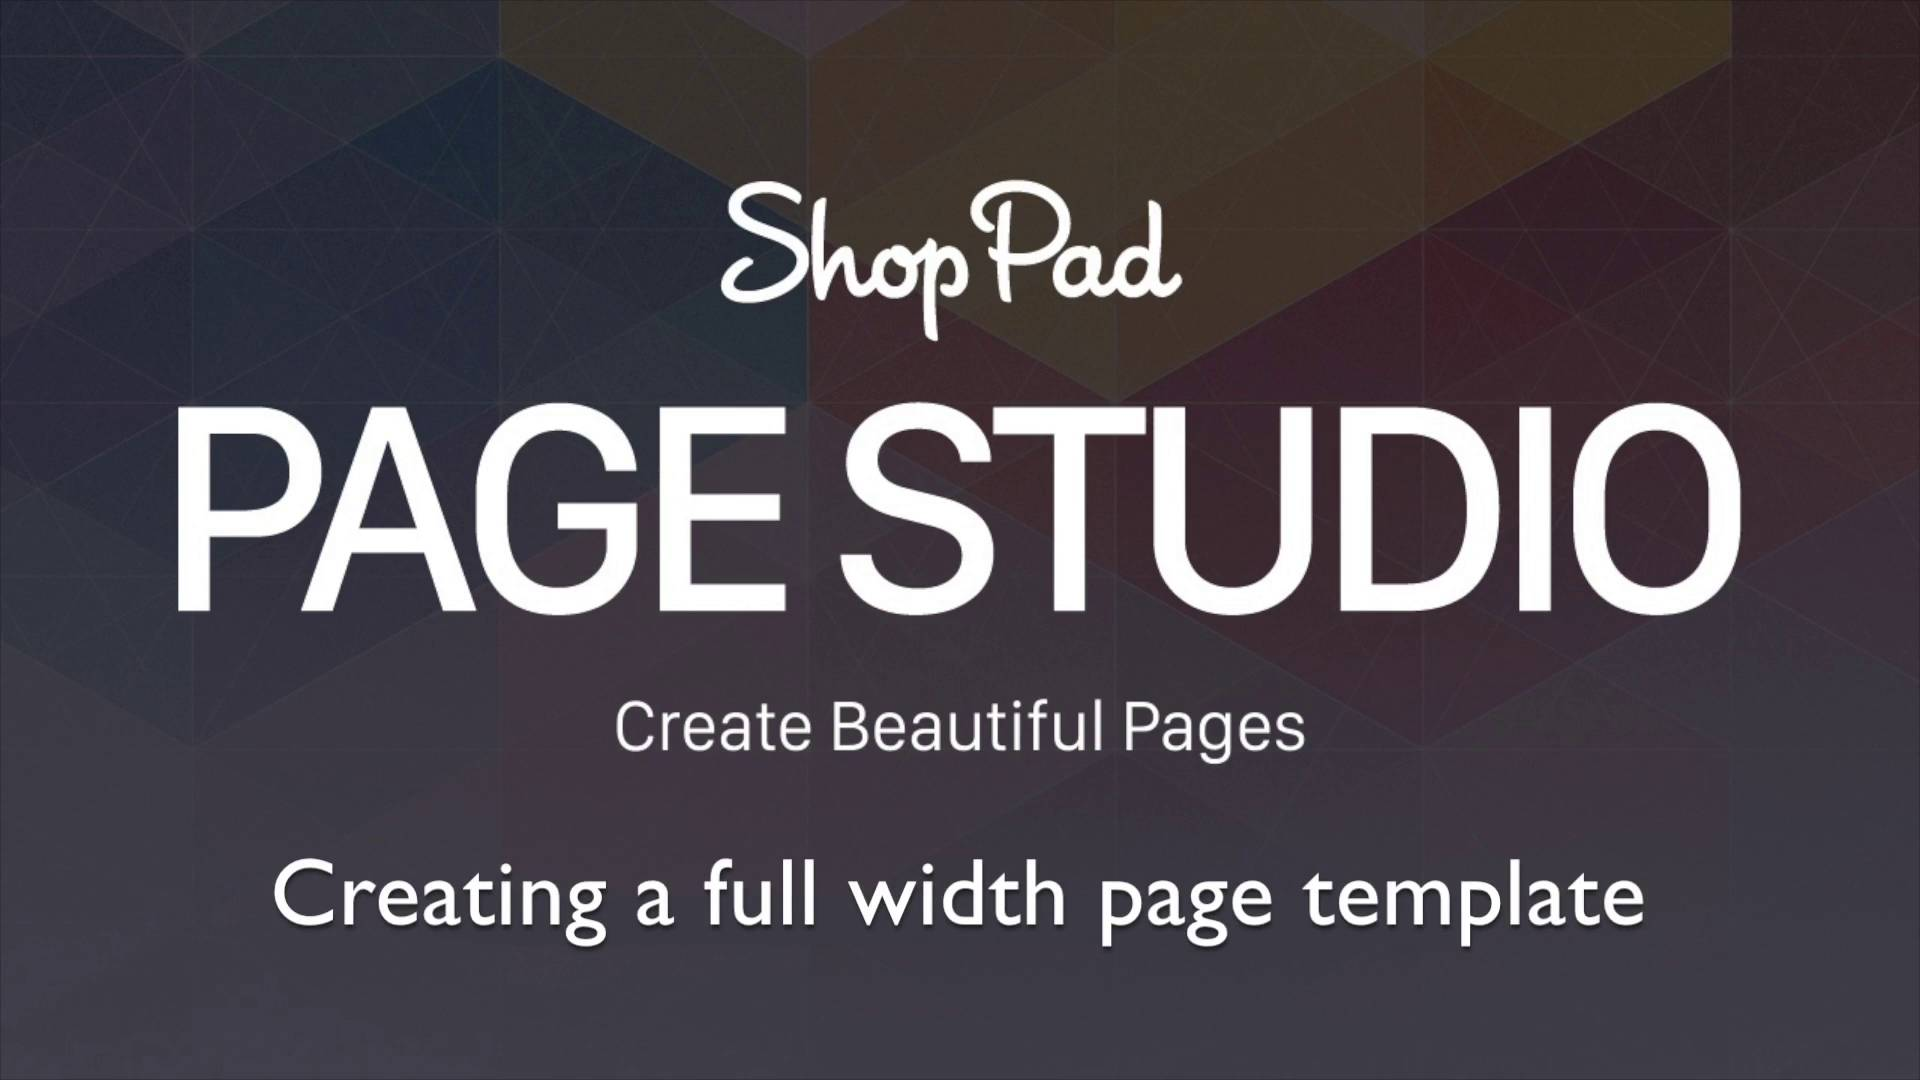 Enable full width pages - ShopPad Knowledge Base